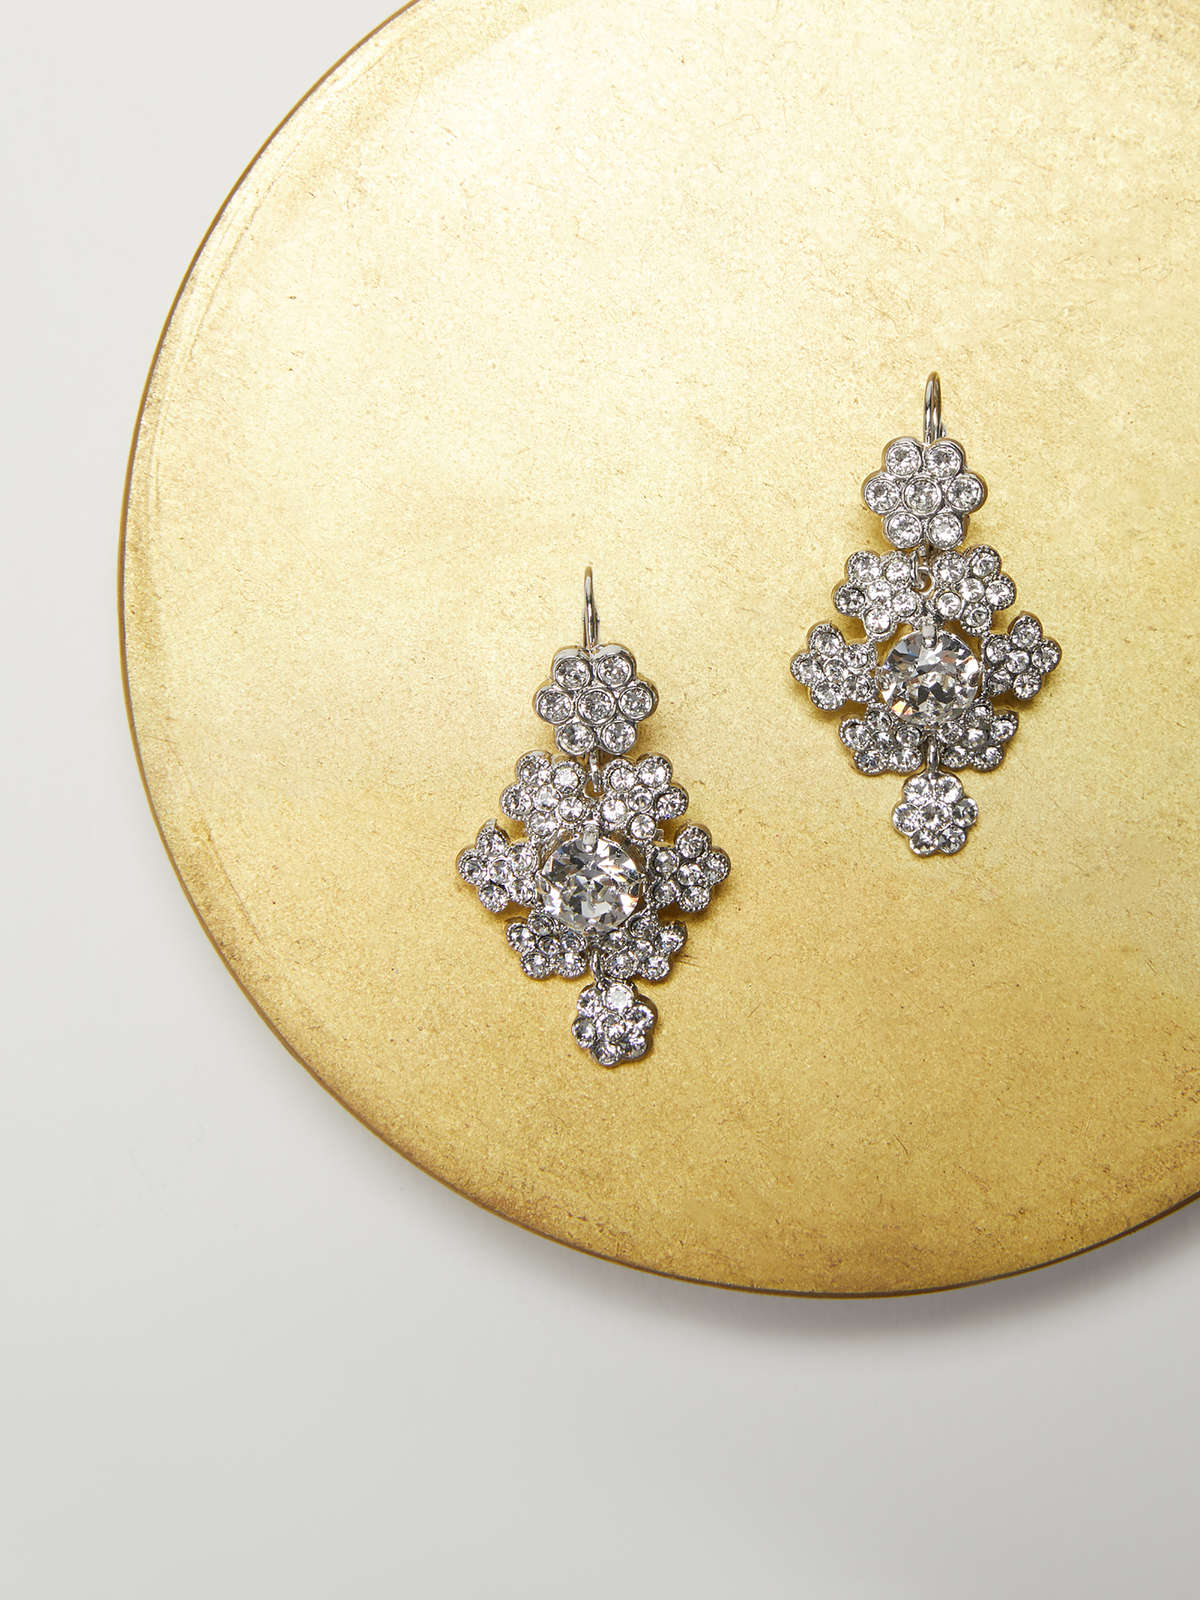 Rhinestone flower-shaped earrings